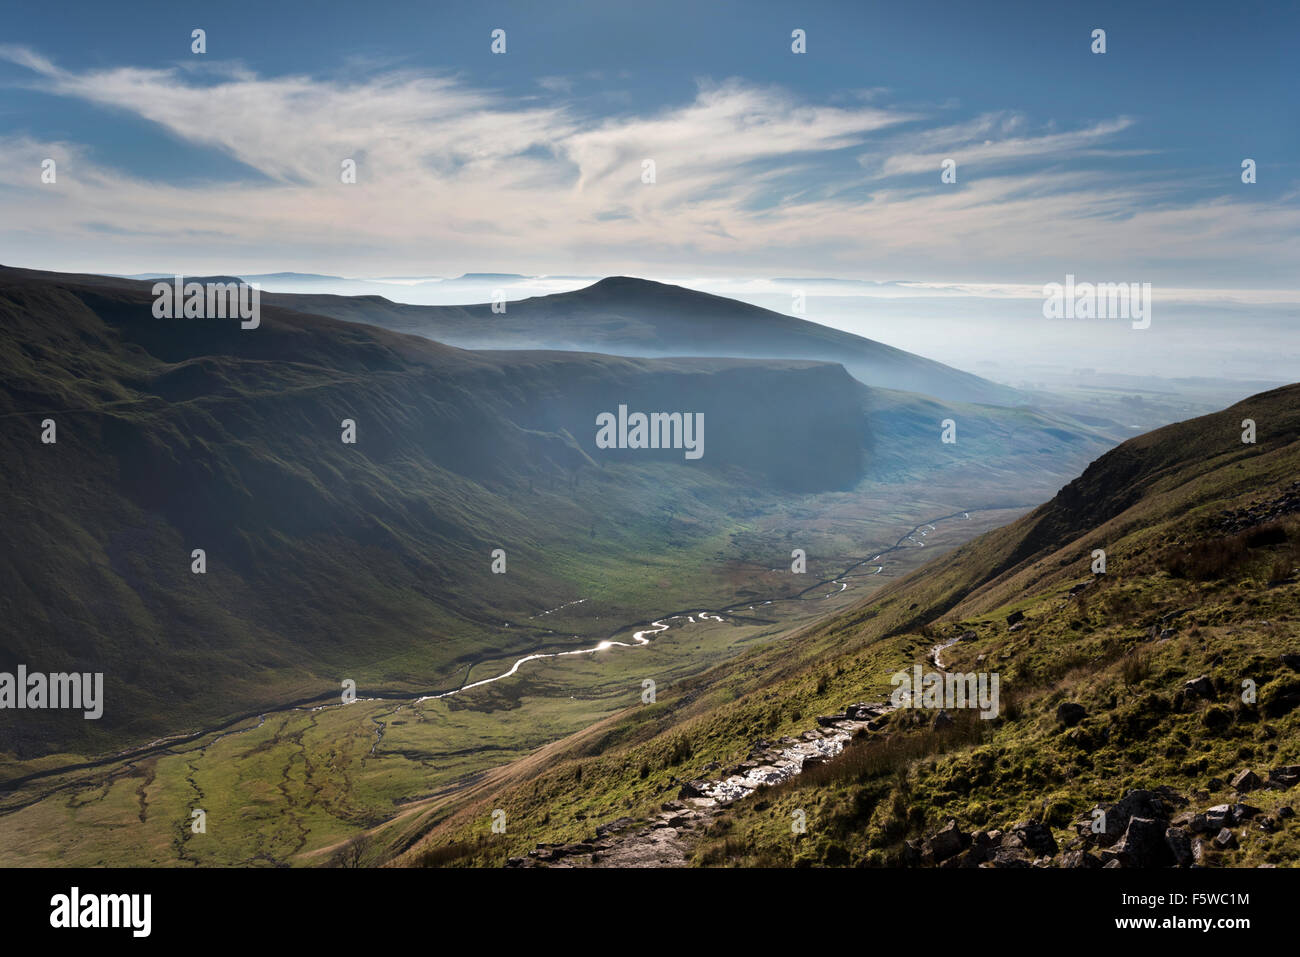 A misty Autumn day seen from the Pennine Way National Trail at High Cup Nick, near Appleby, Cumbria, UK - Stock Image